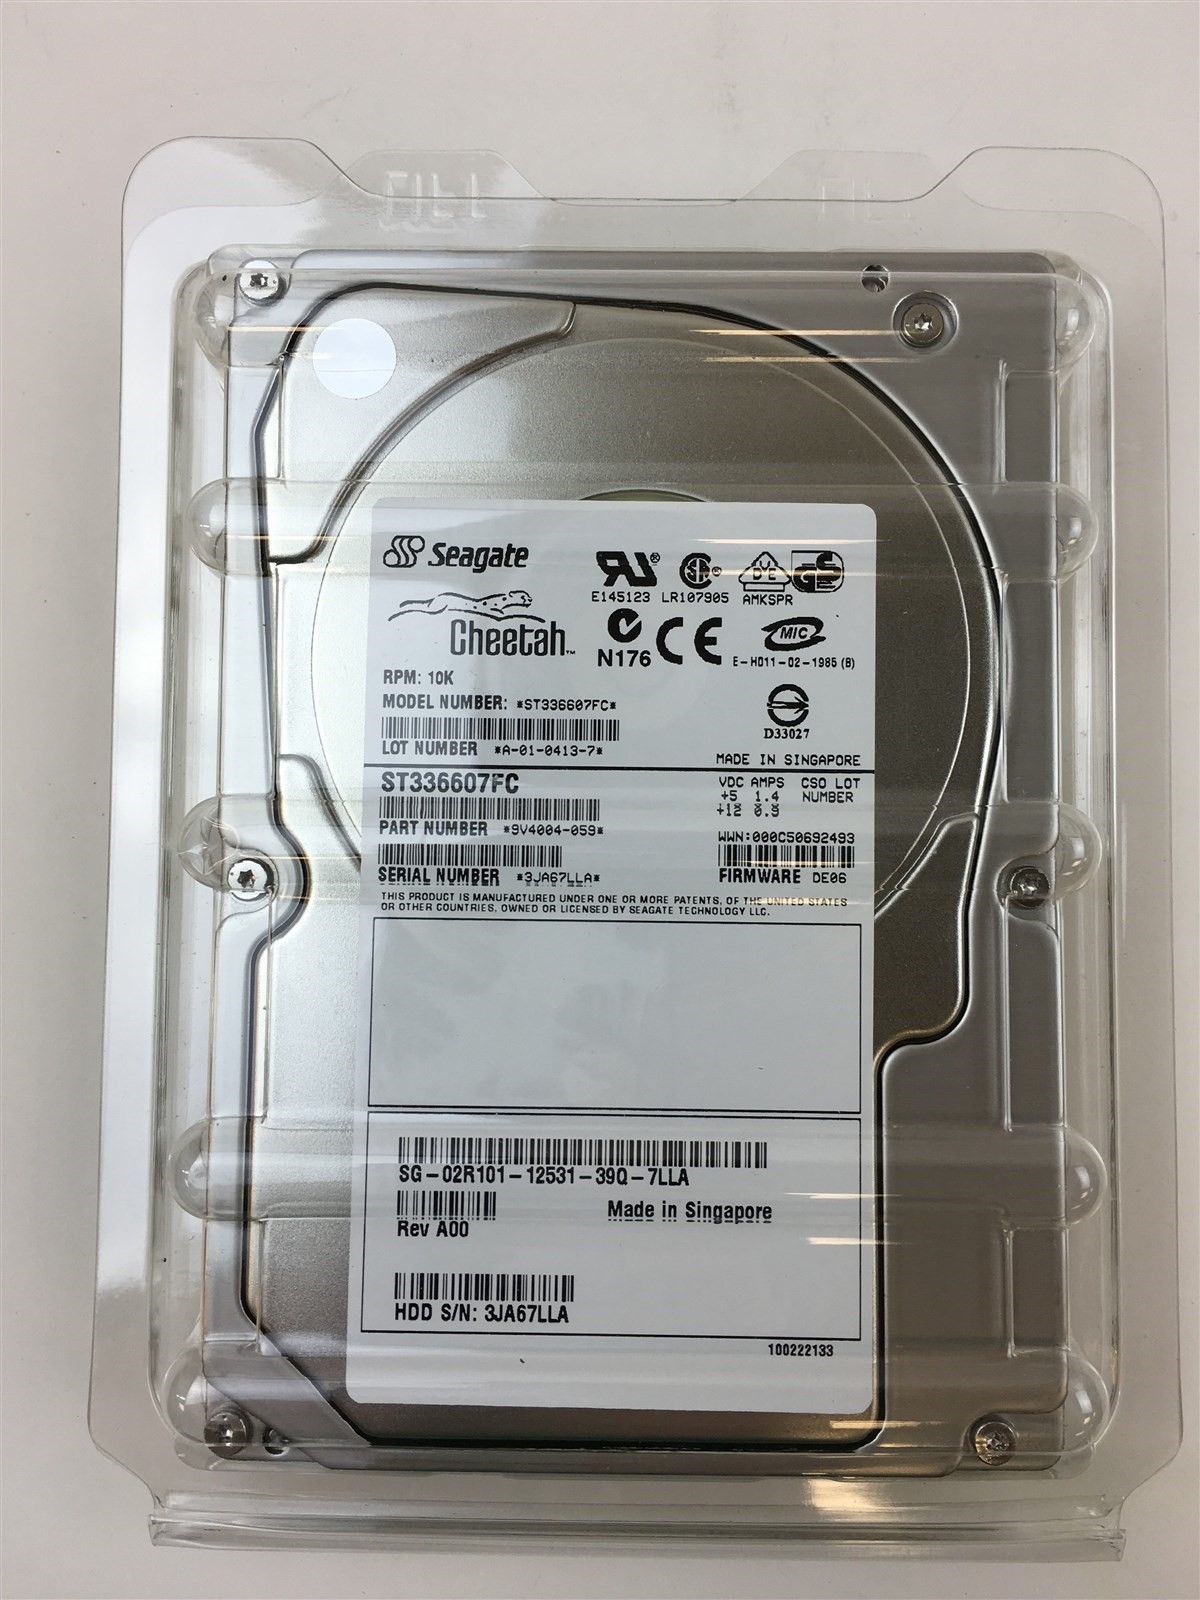 Seagate Cheehah N176 9V4004-059 RPM 10K 36Gb Internal Hard Drive 2R101 02R101